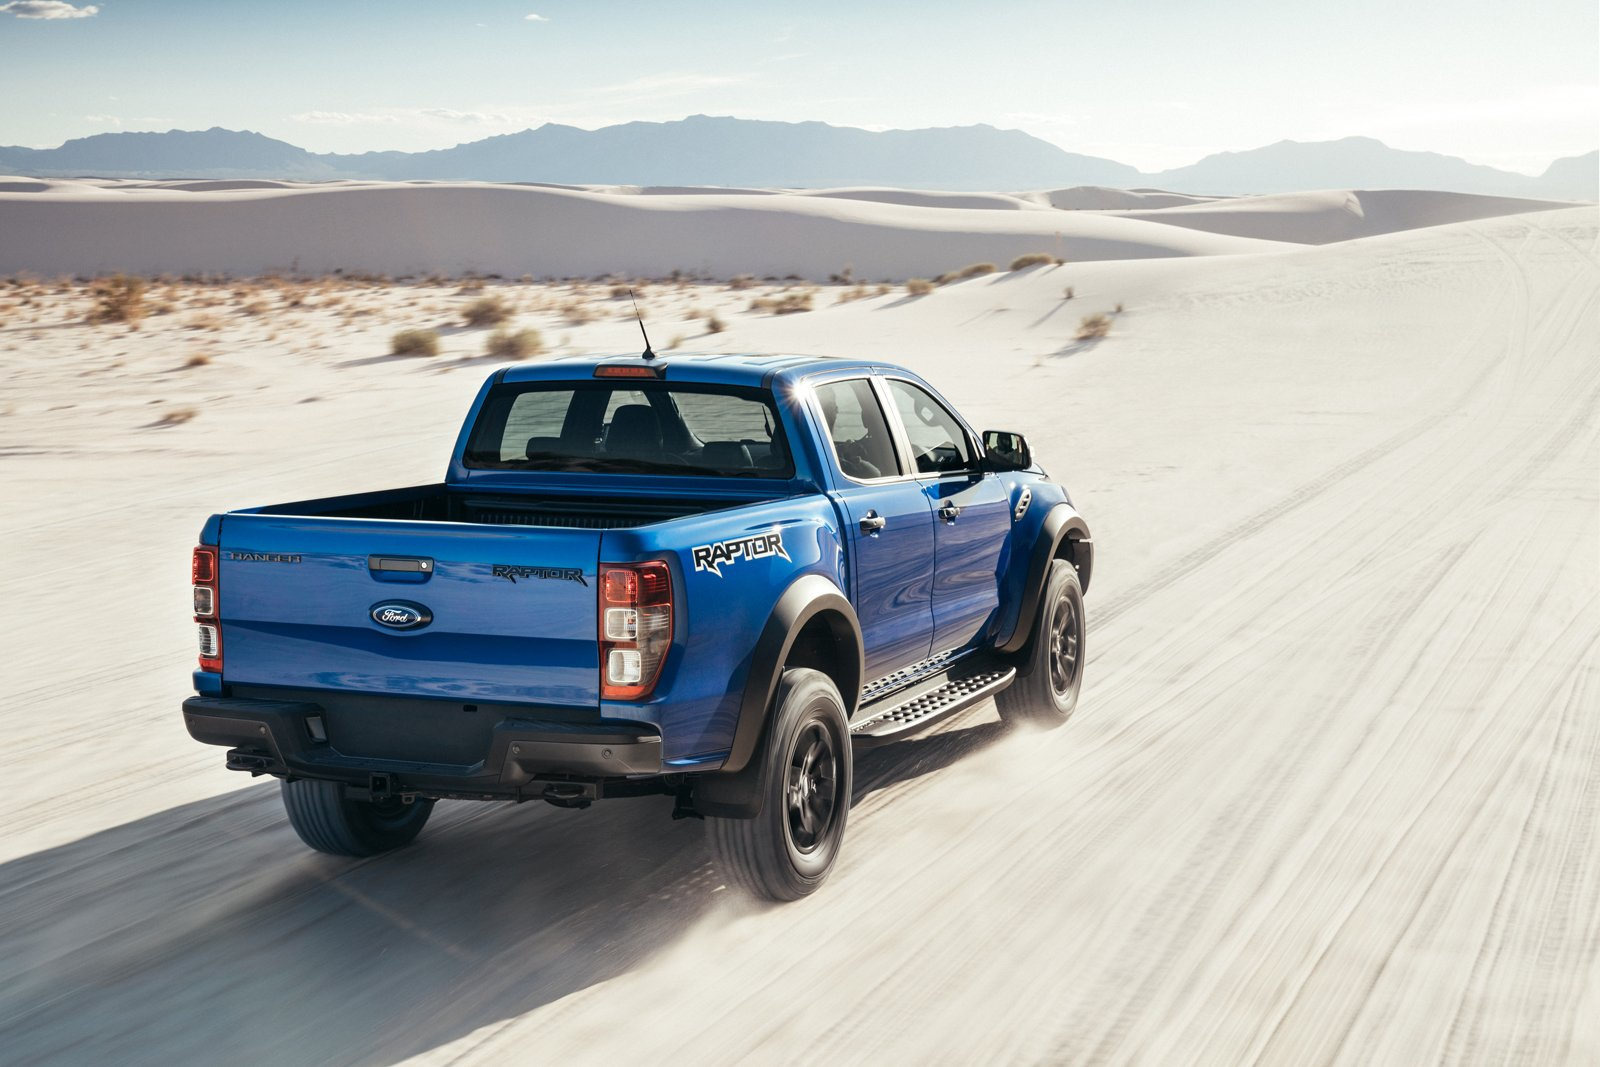 Ford Ranger Raptor Could Arrive in US With Gas Engine